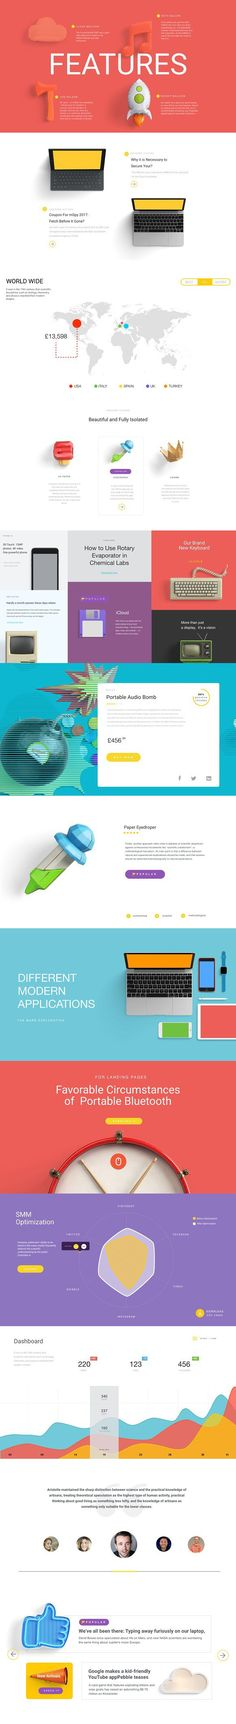 Infographic Ideas infographic proposal template : Medical PPT Vertical Template